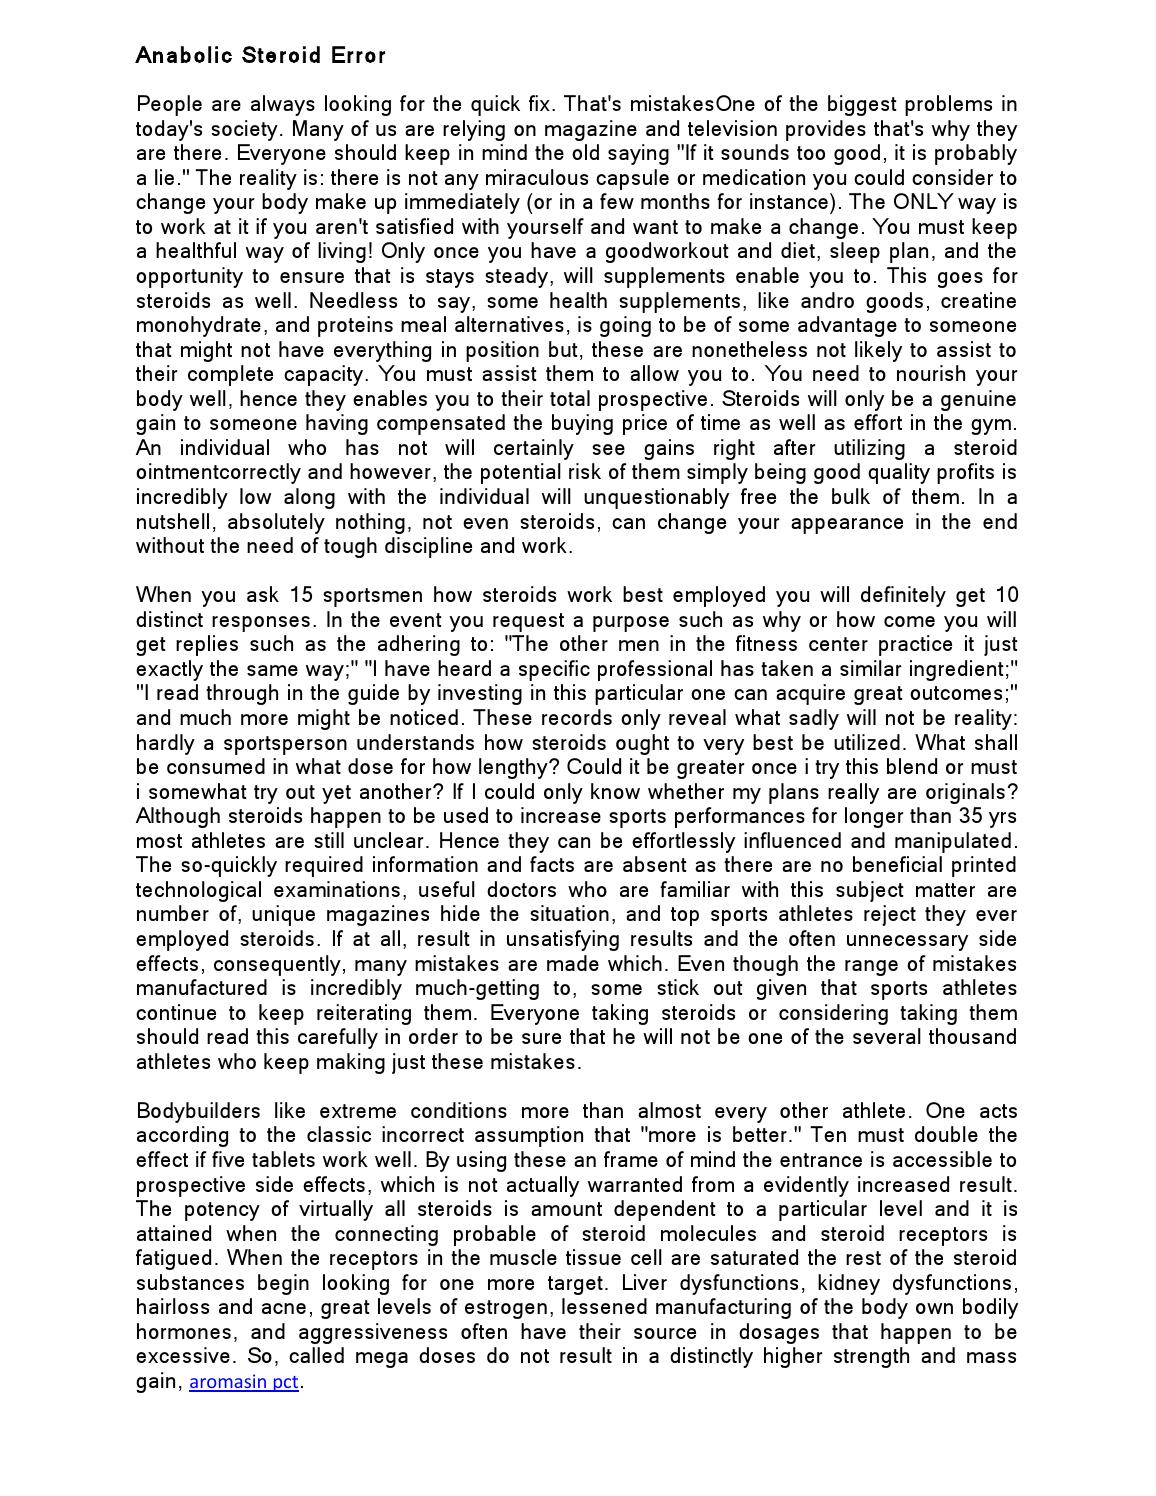 Policy implementation and evaluation essays